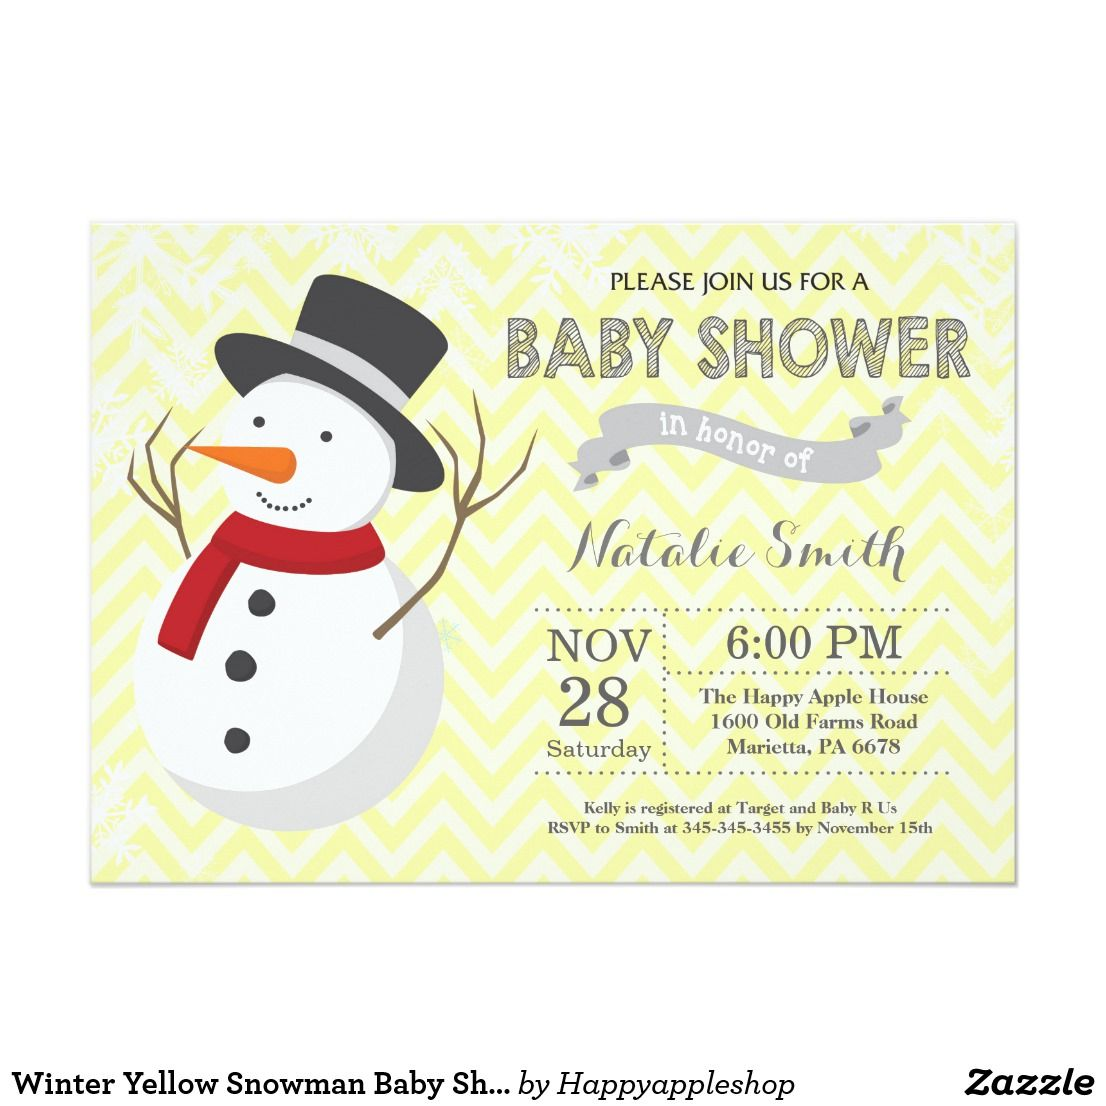 Winter Yellow Snowman Baby Shower Invitation